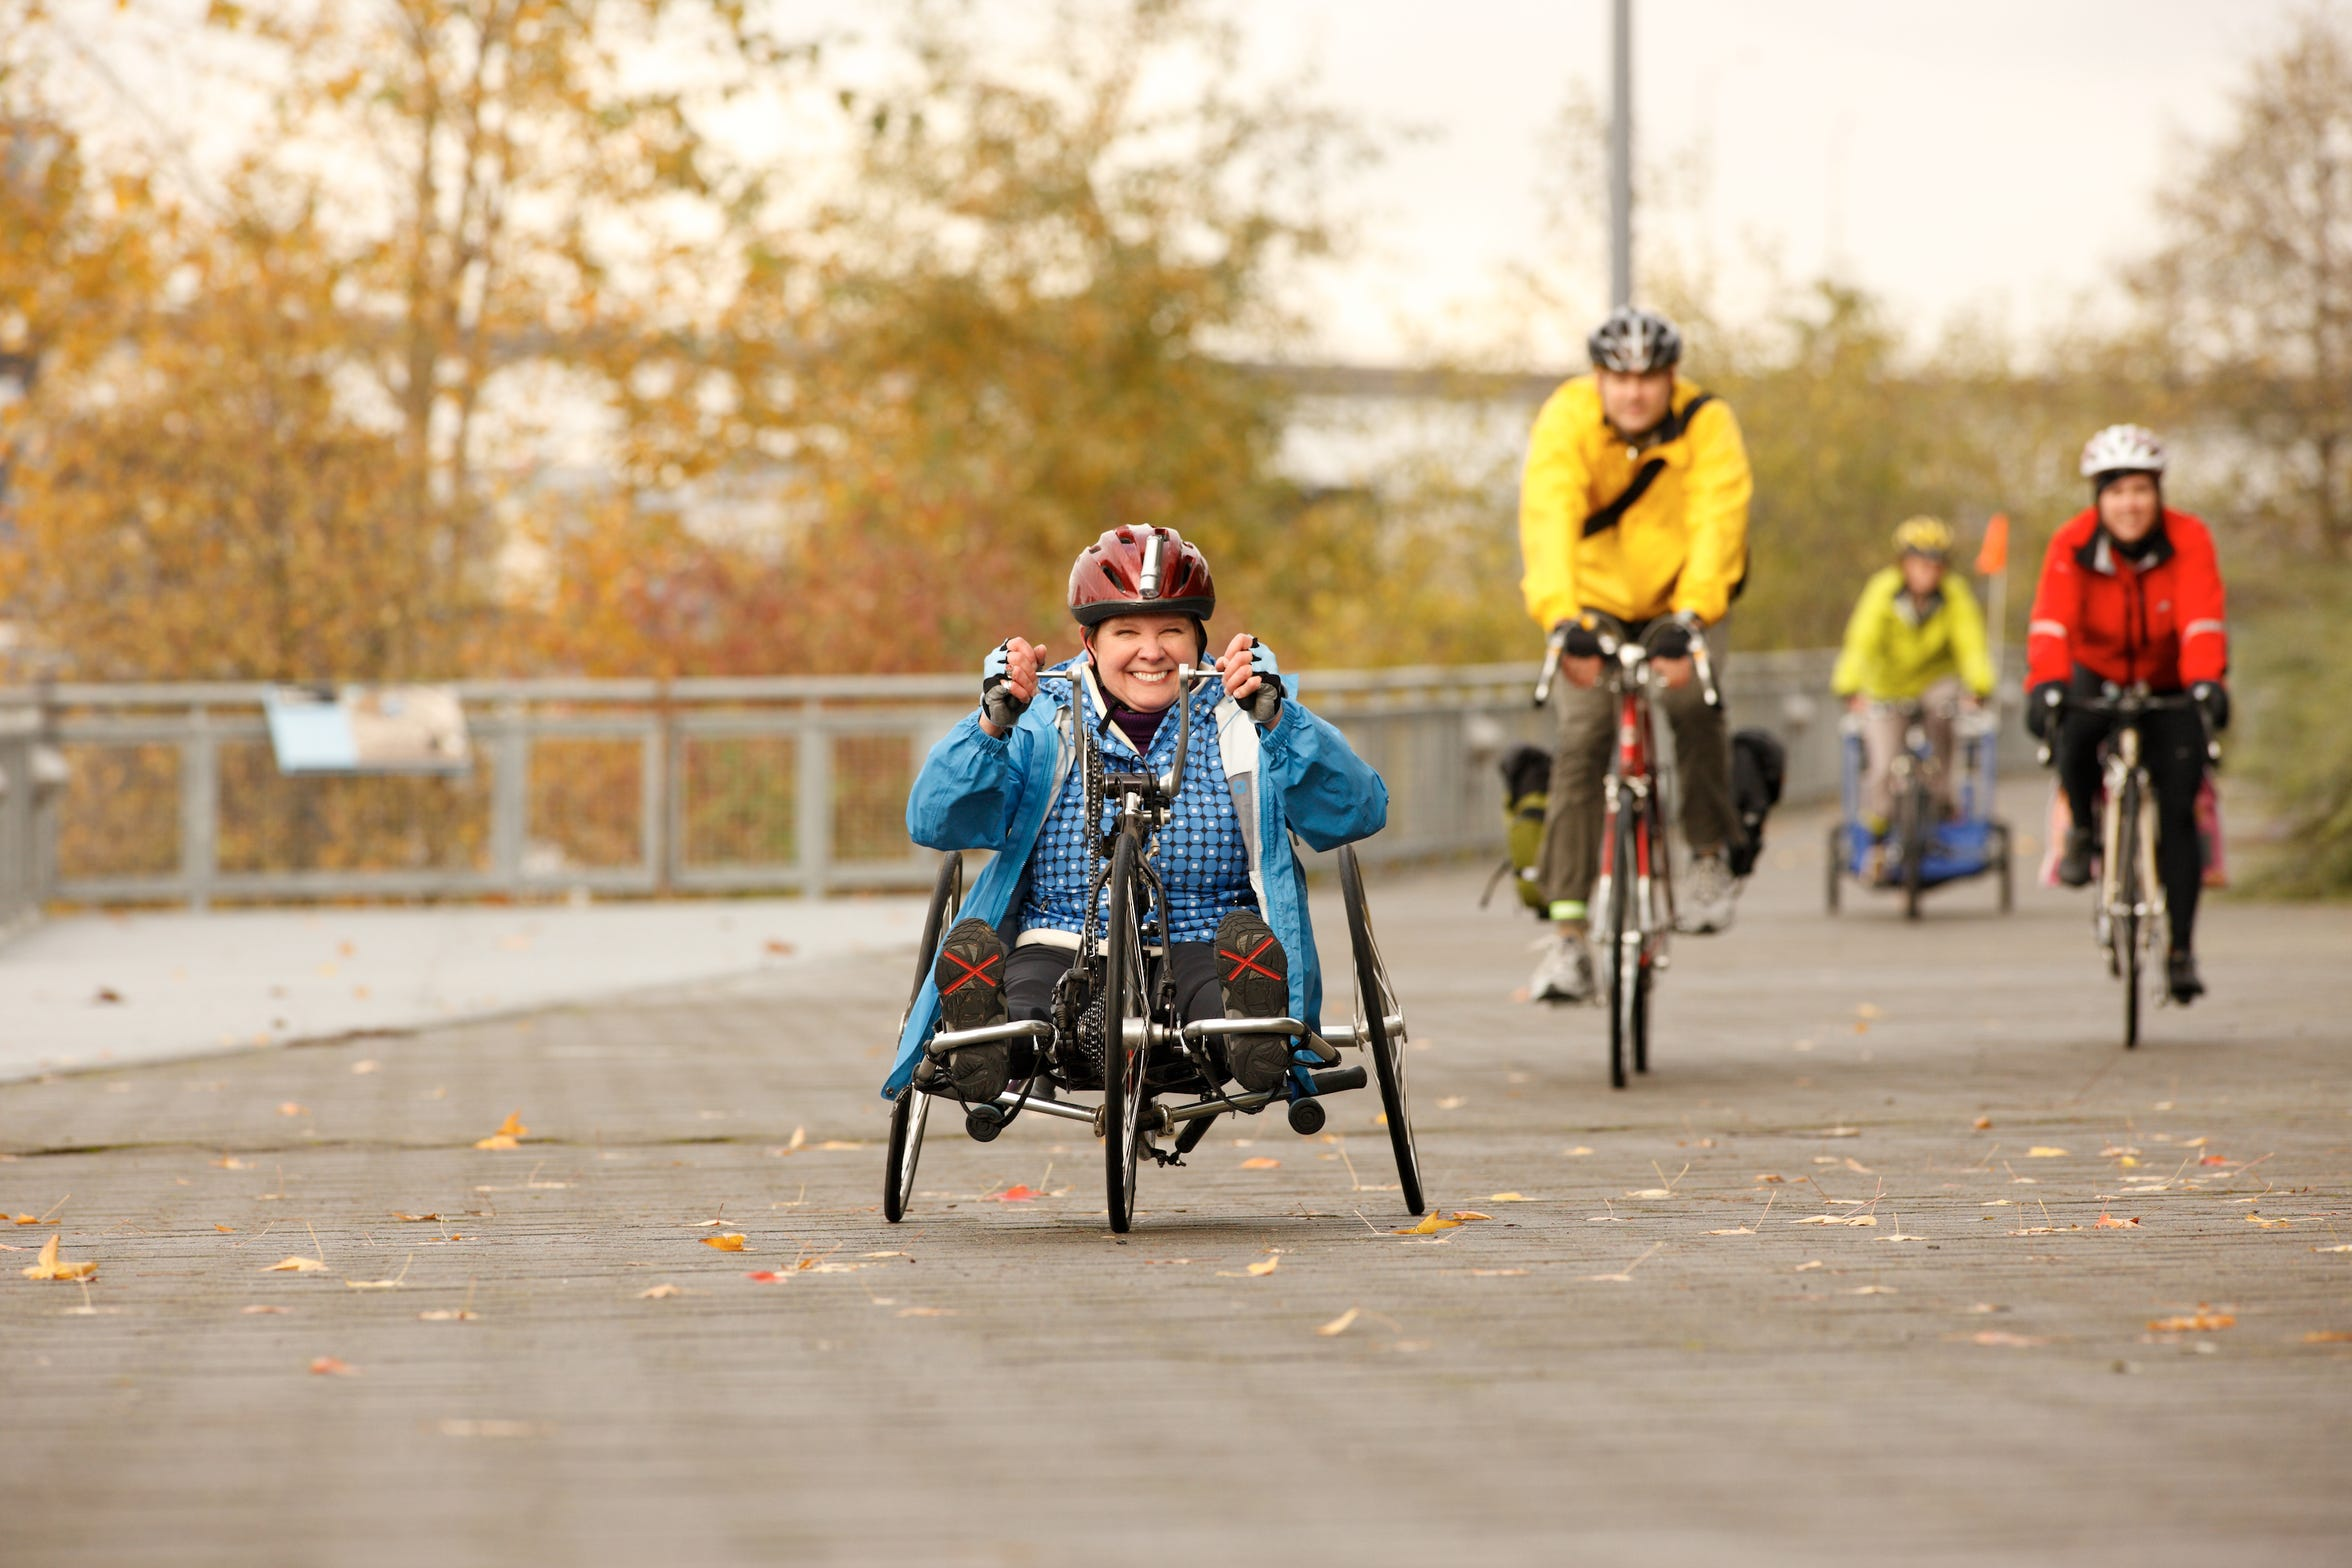 Biking can be a good way for people of all ages to get moving. Remember to always wear a helmet before pedaling away.